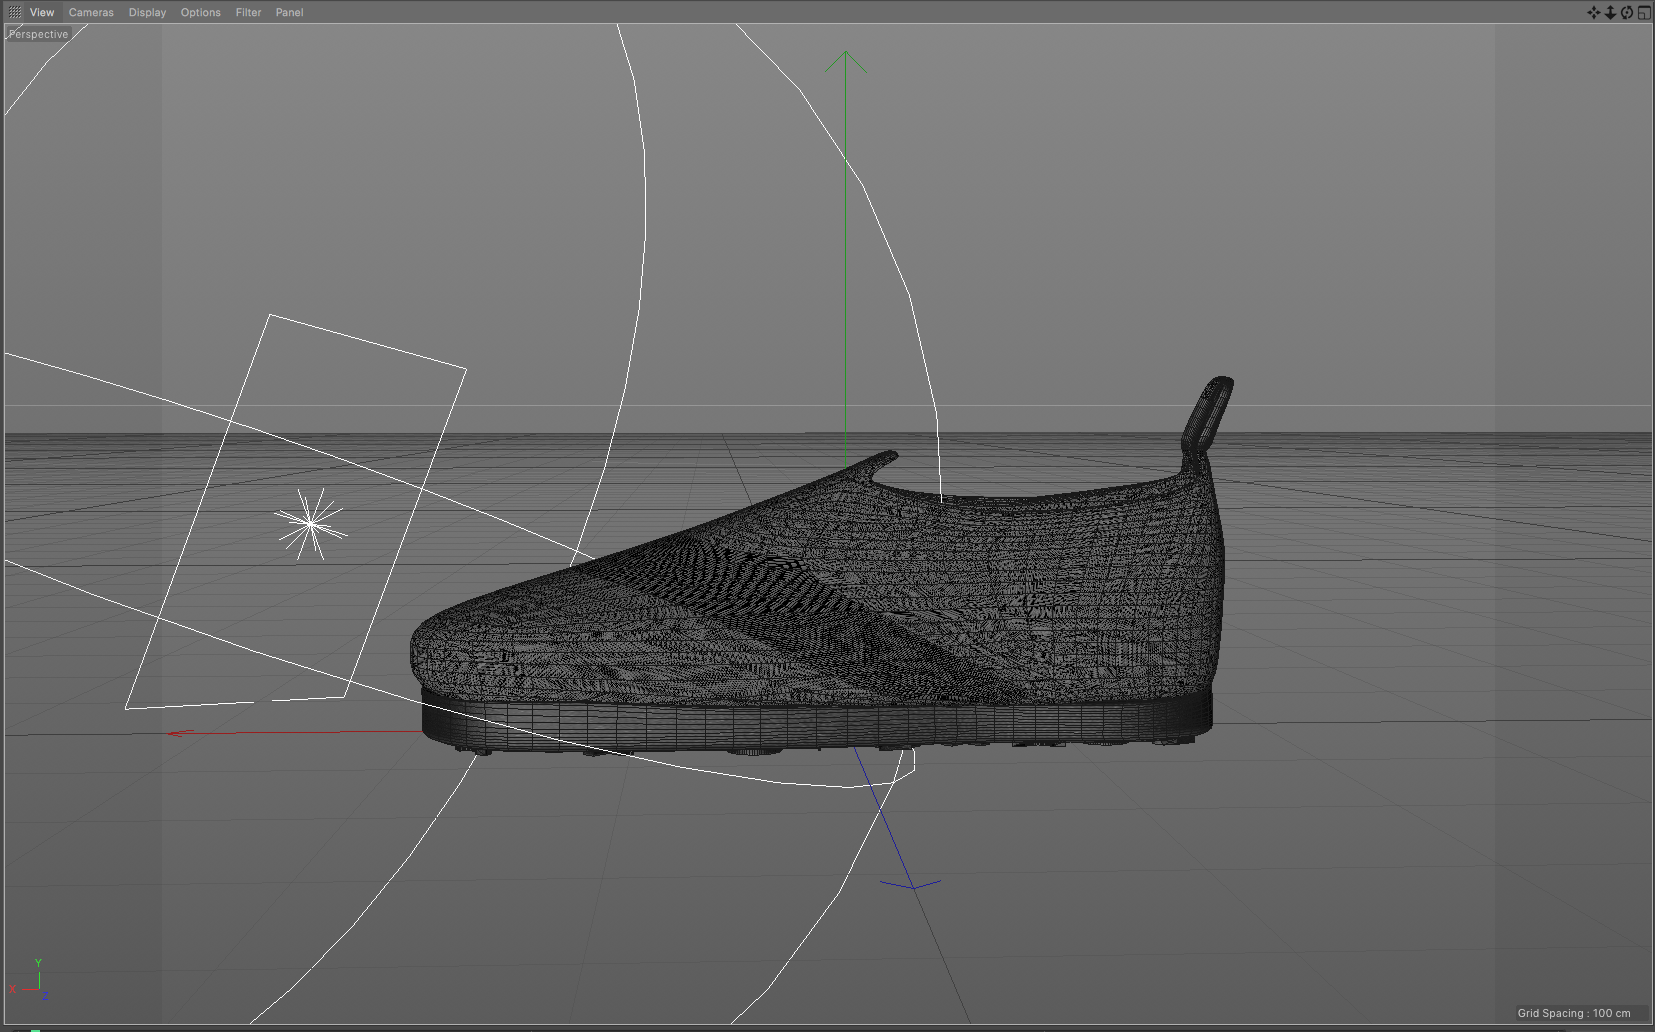 The smooth shoe with 2 textures fabric and nylon elastic